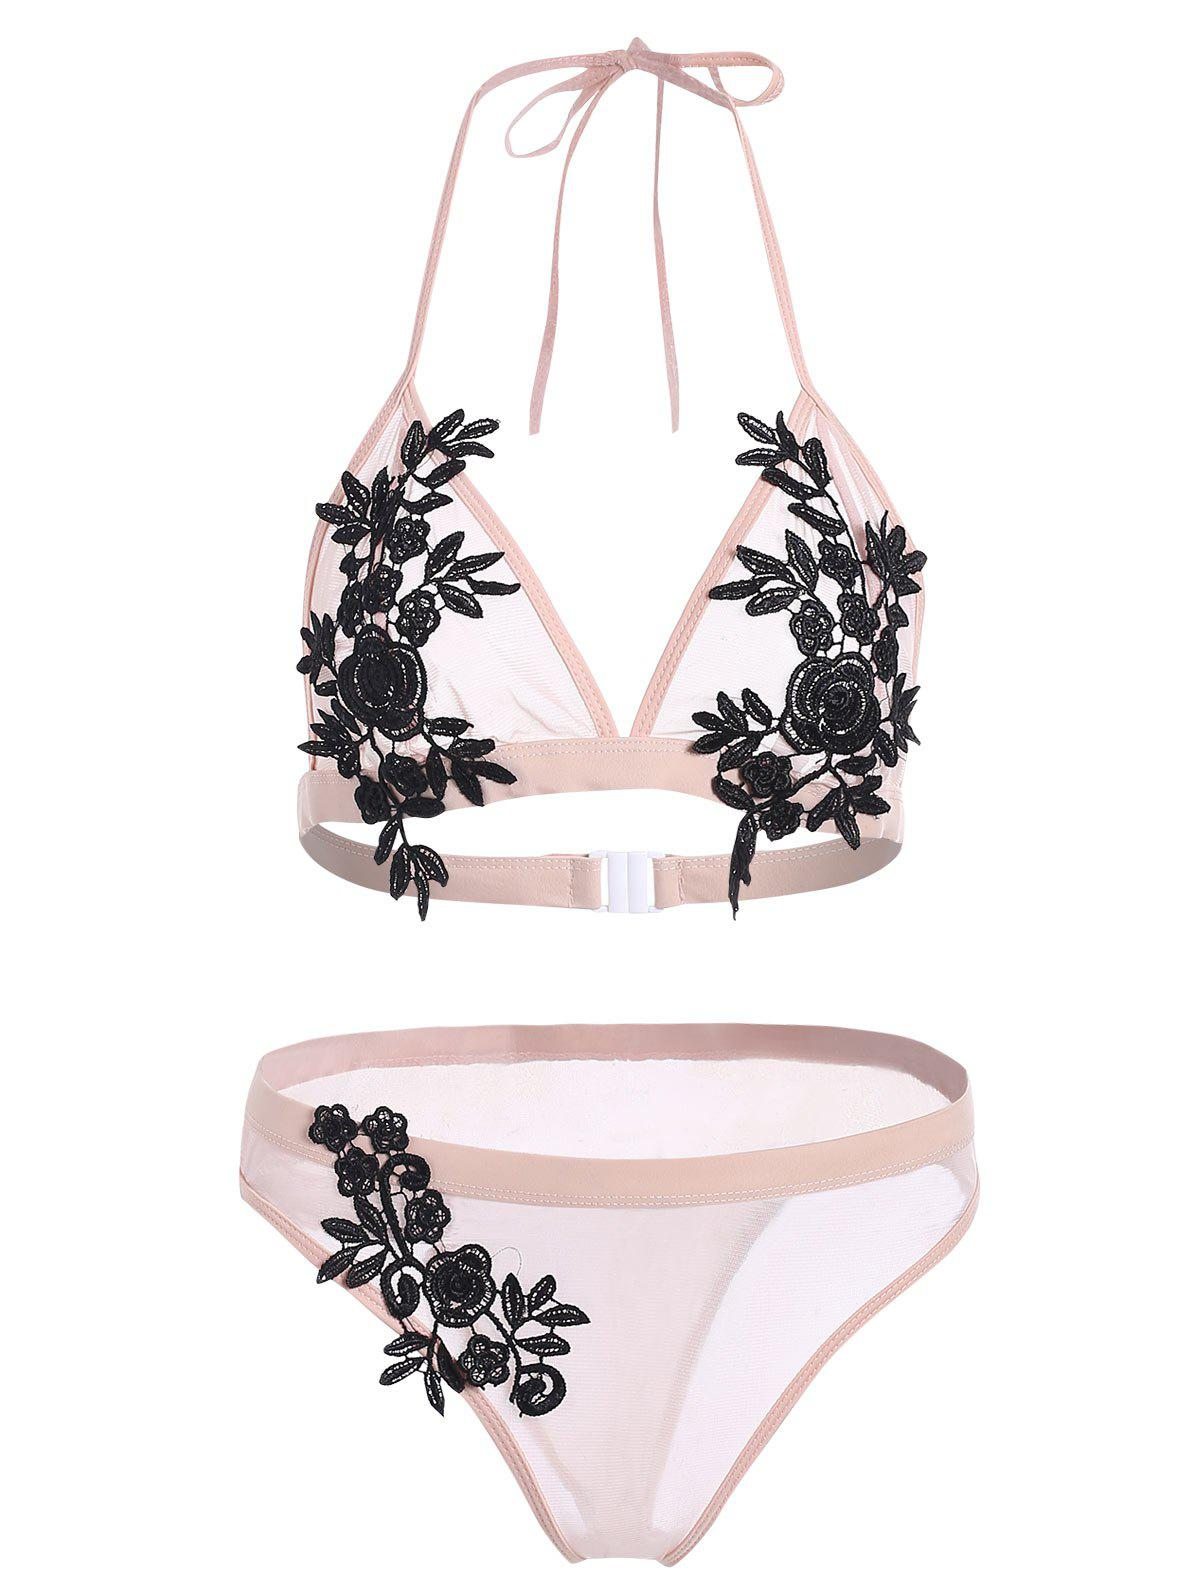 Ensemble de Bikini Applique en Maille Transparente